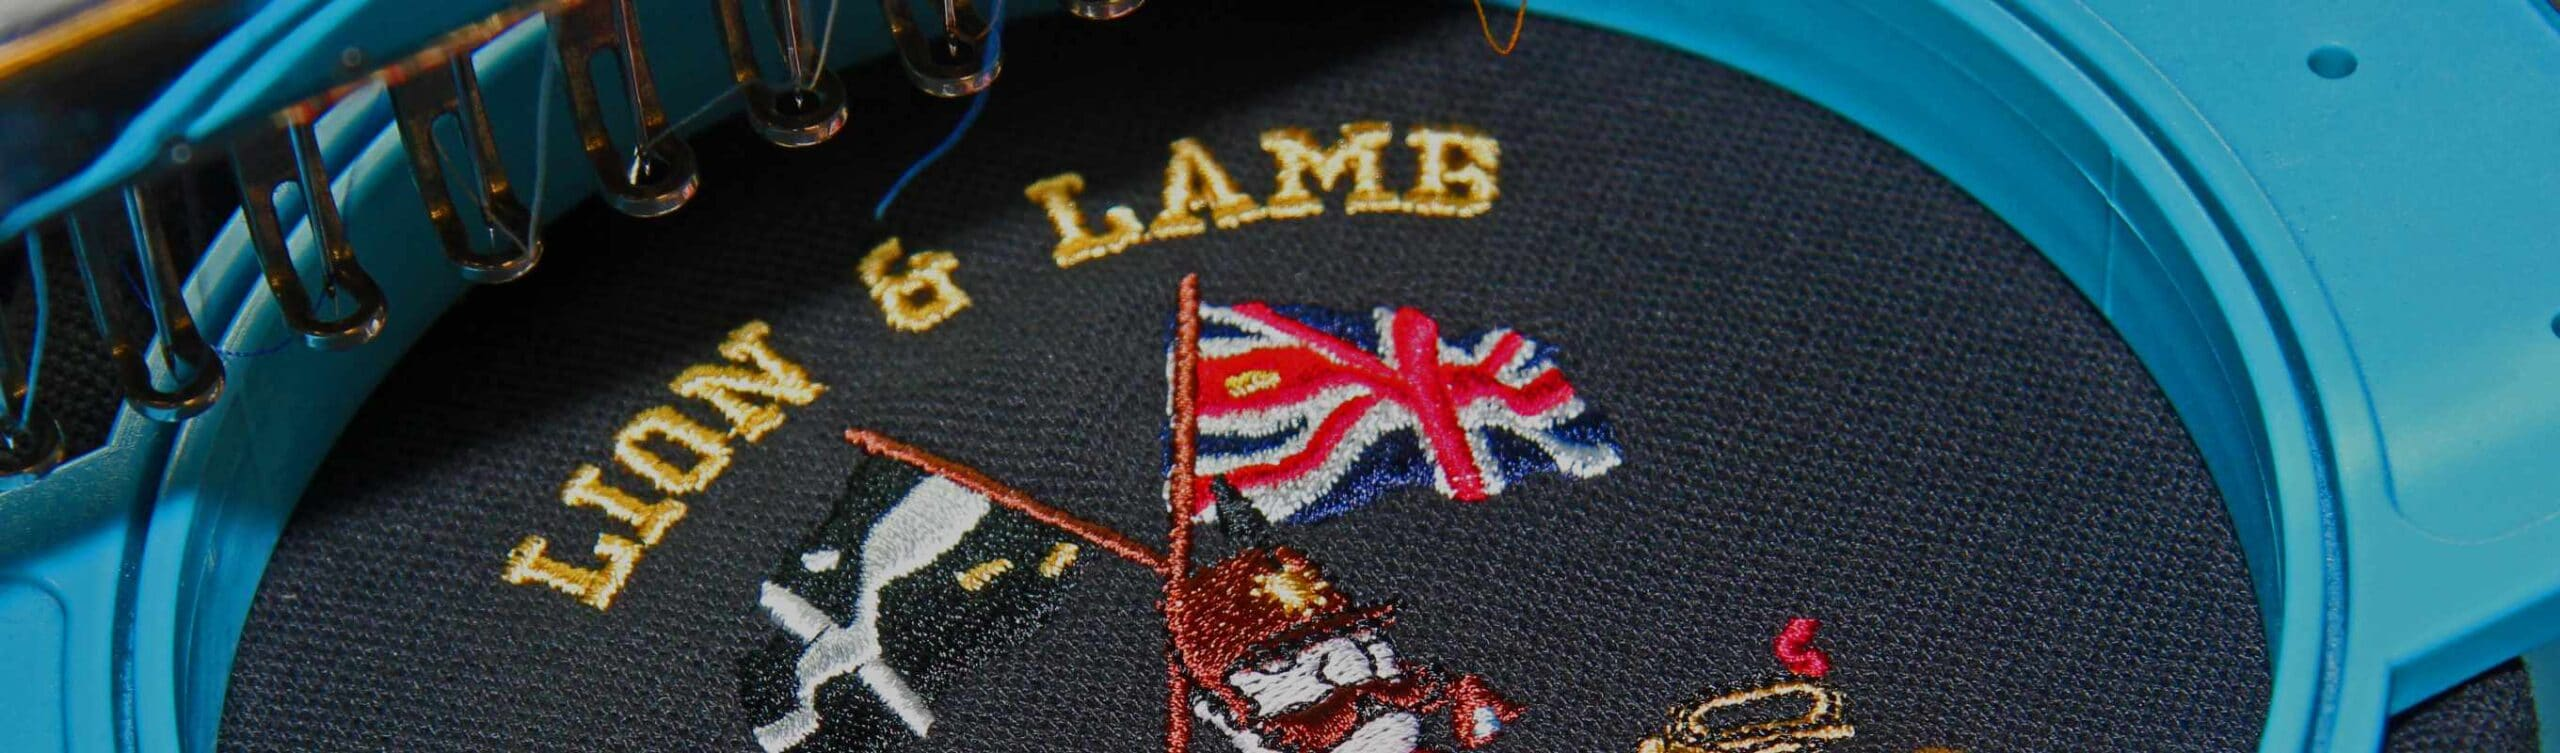 Lion and Lamb Embroidery